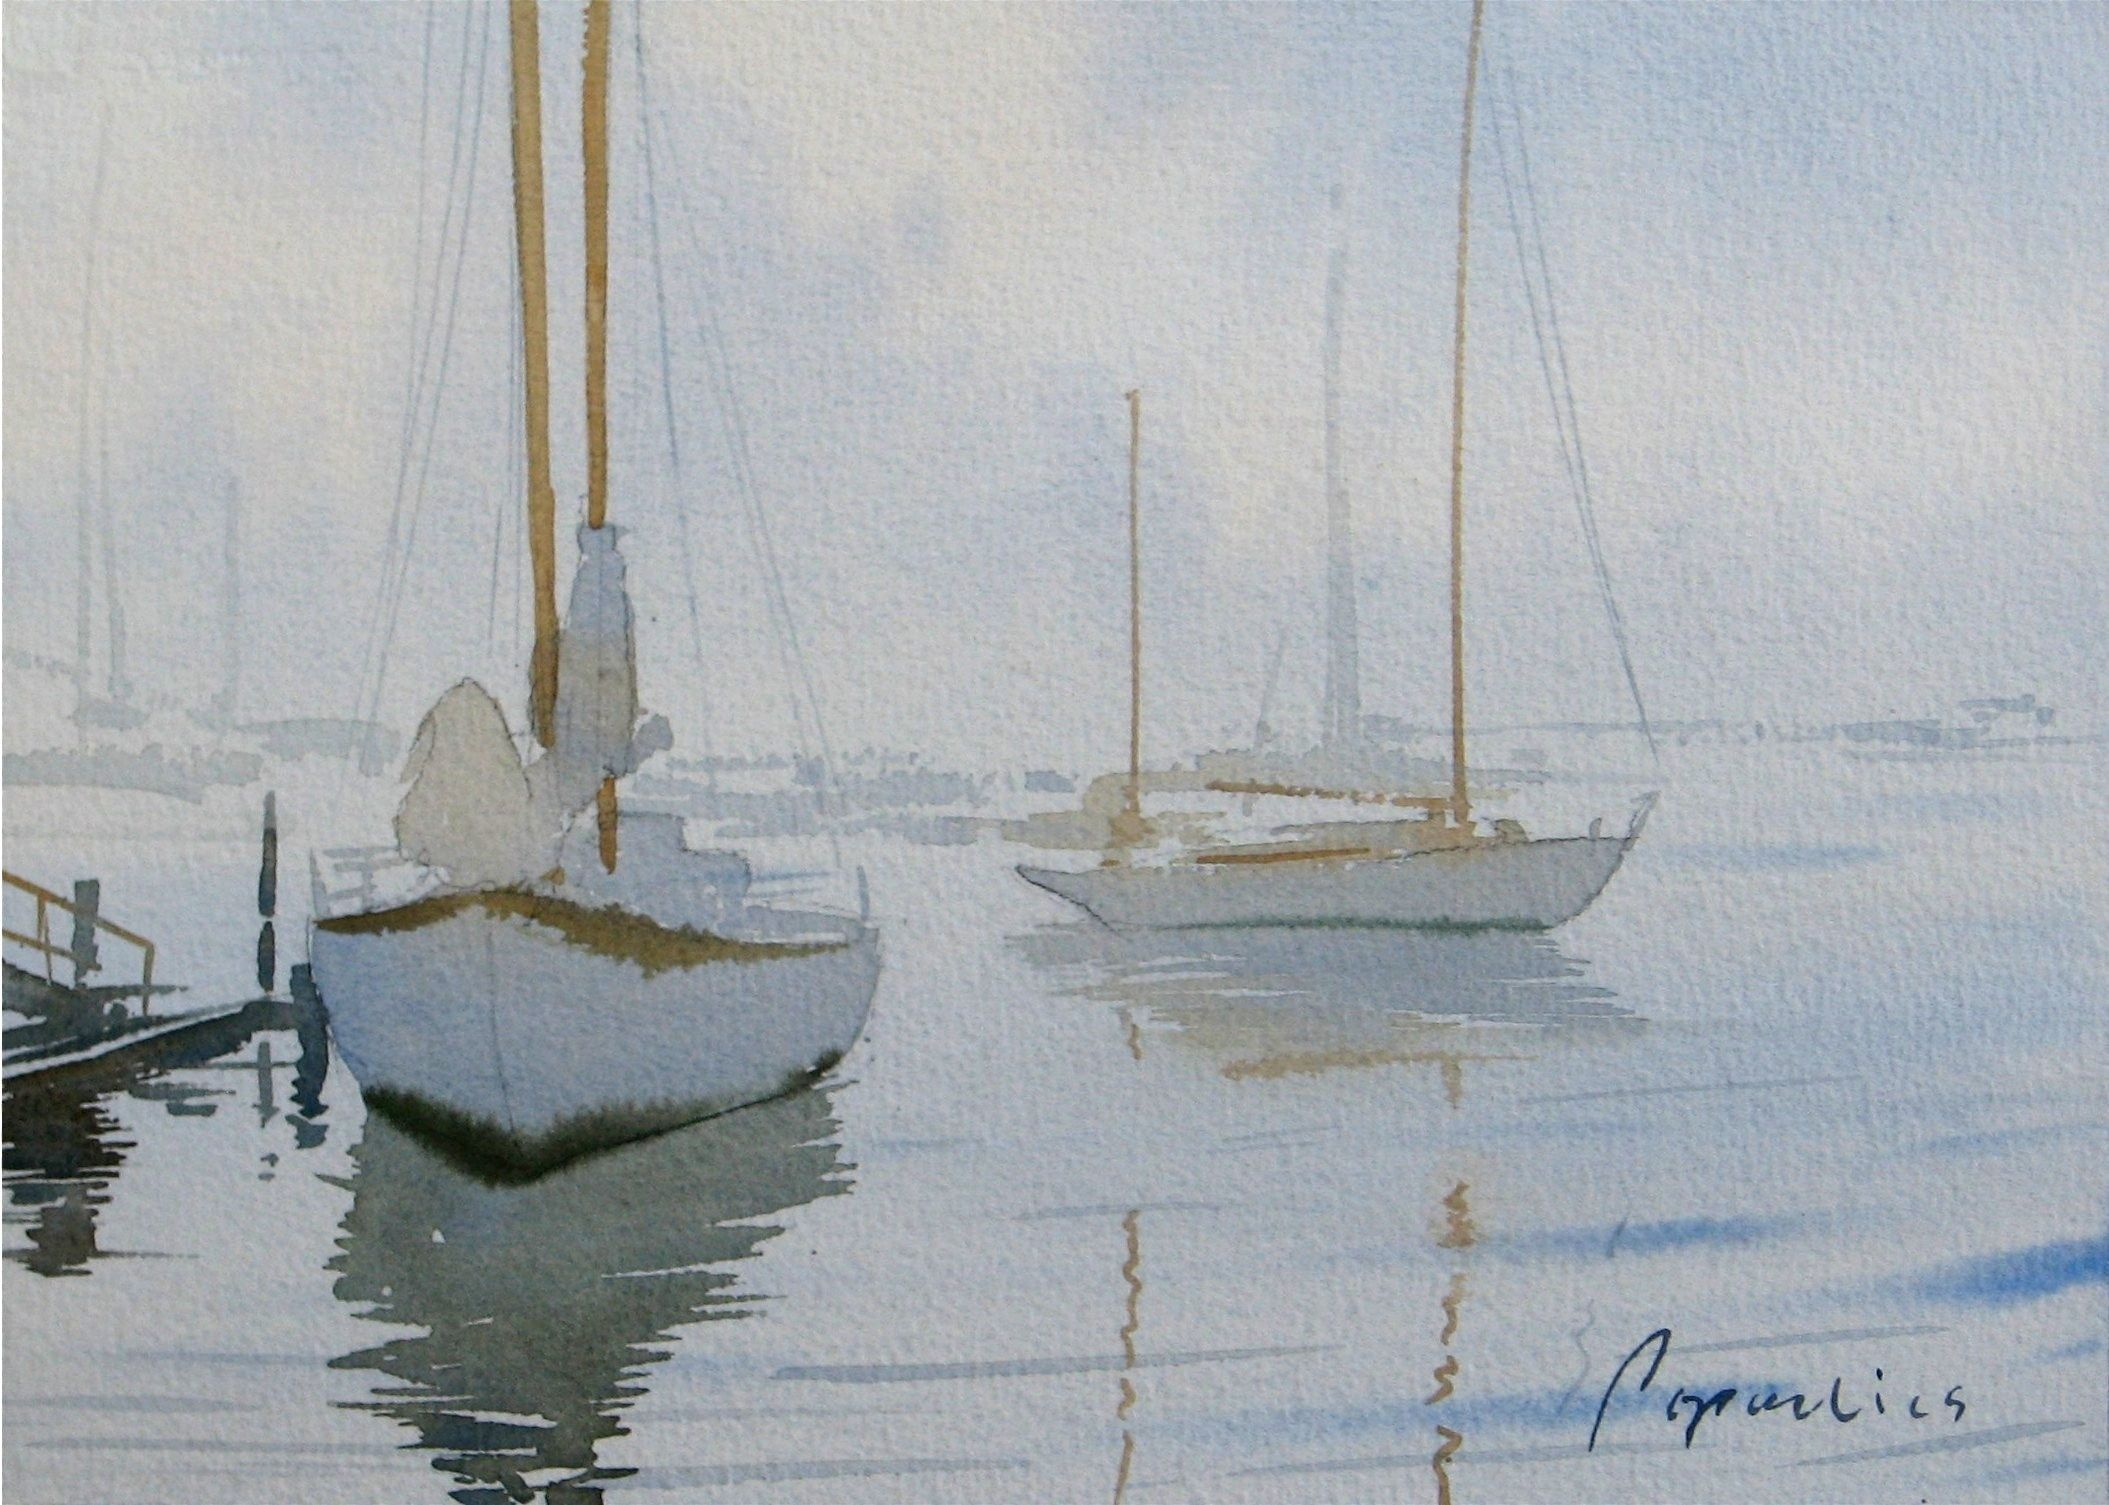 White Sloops in the Marina